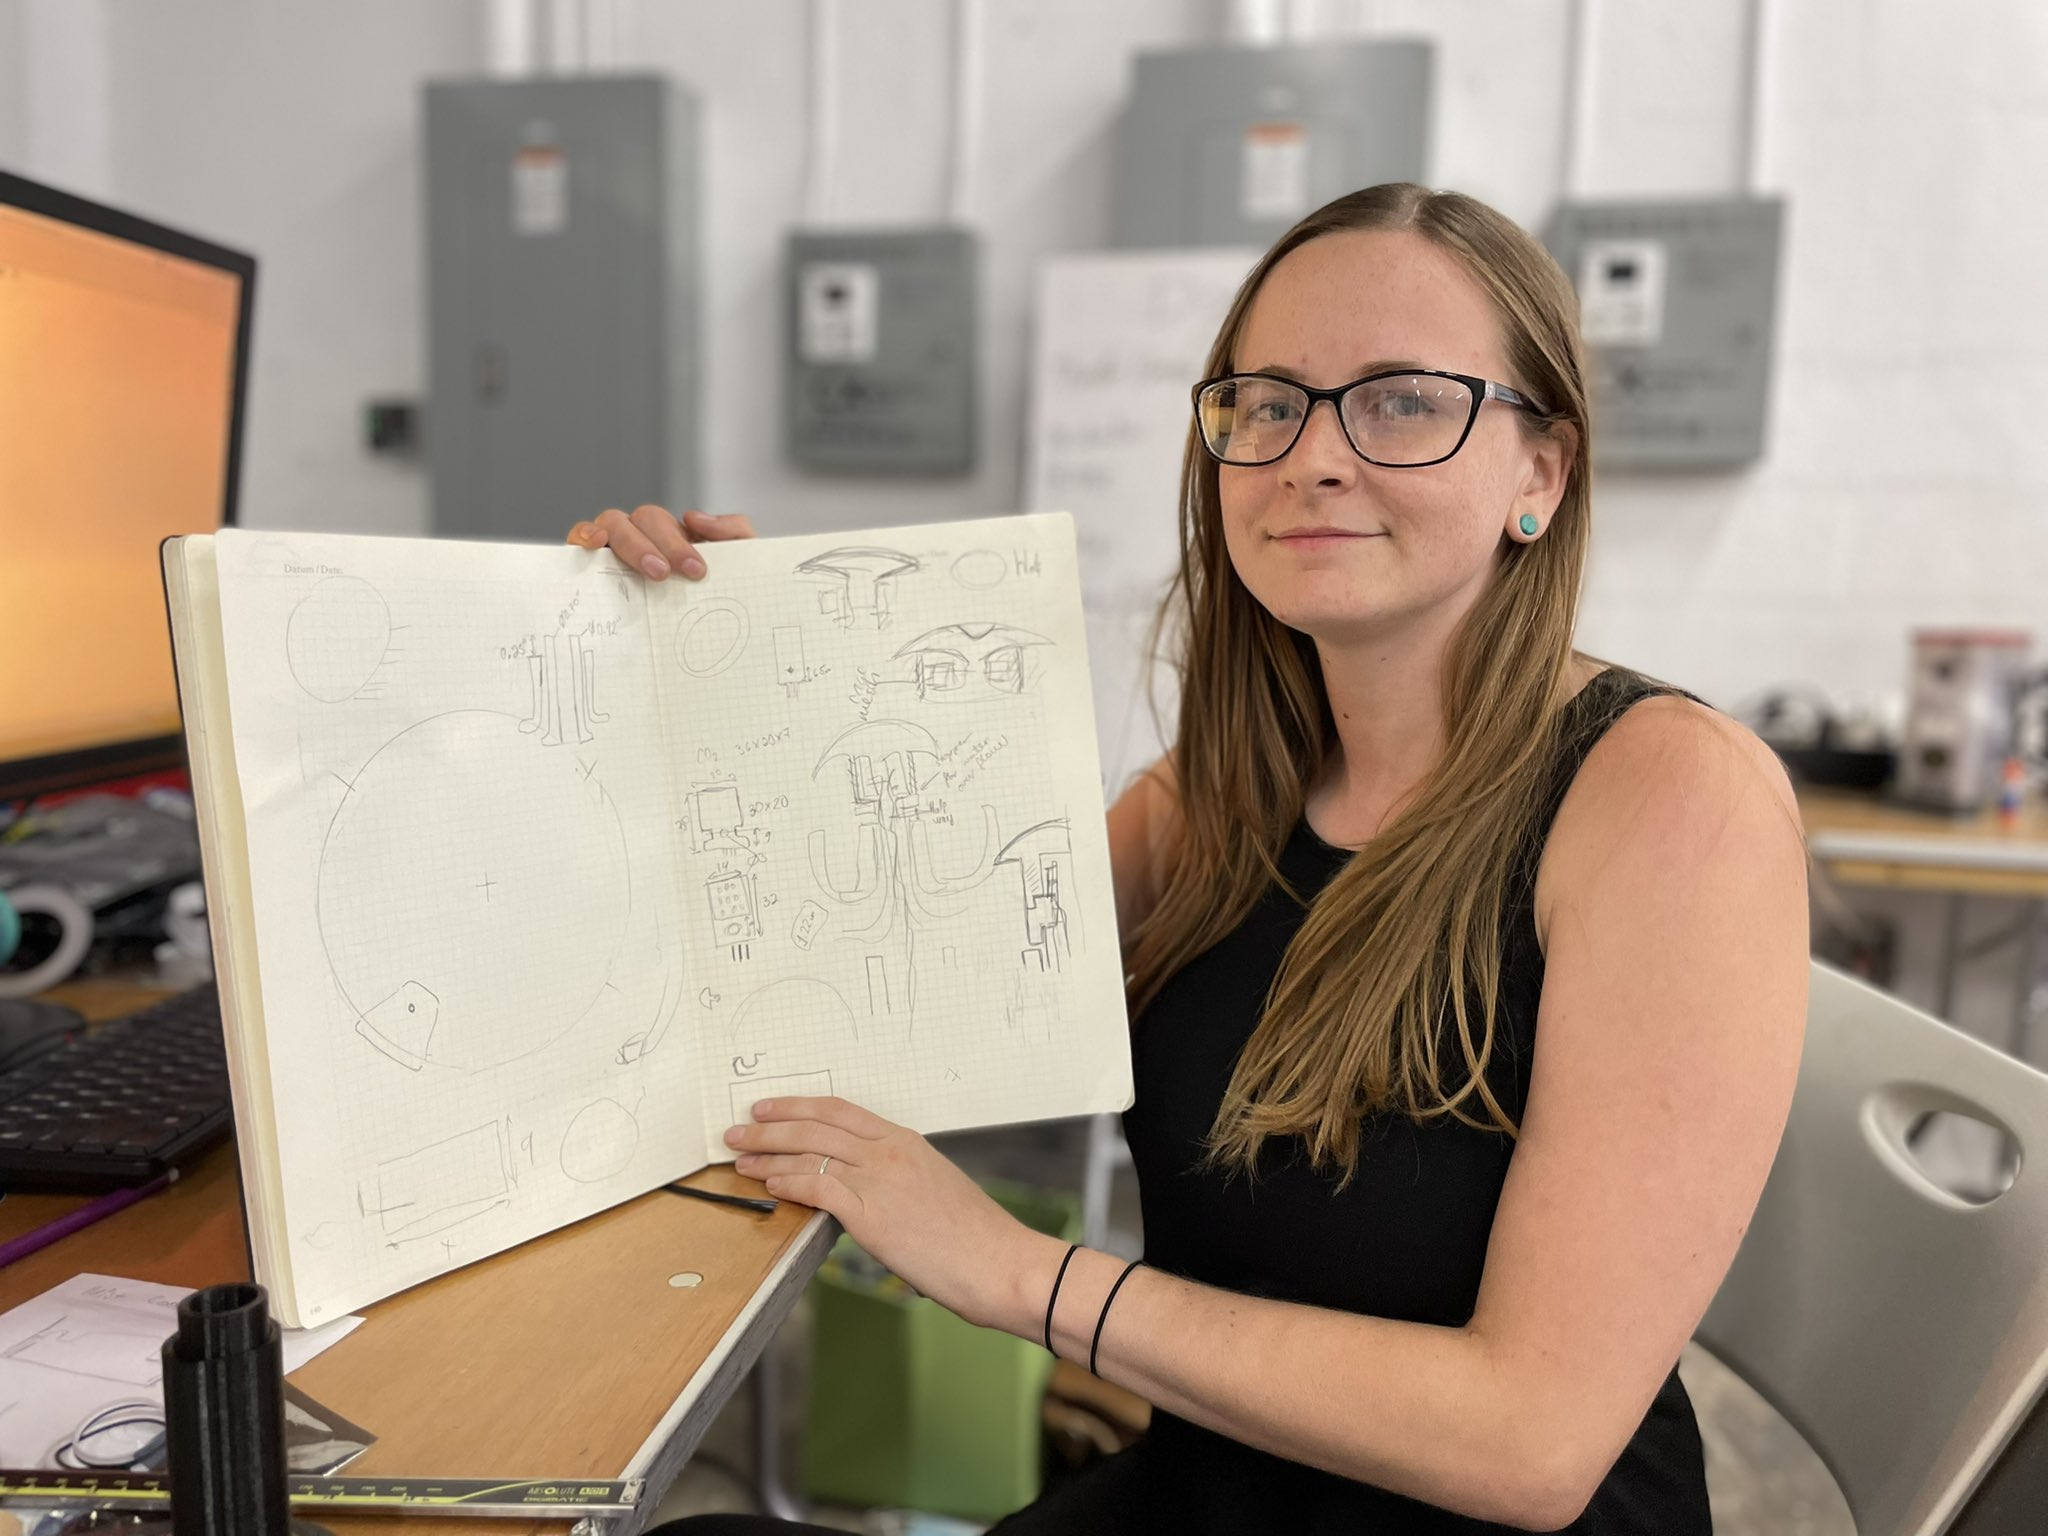 One of our members posing with design notes